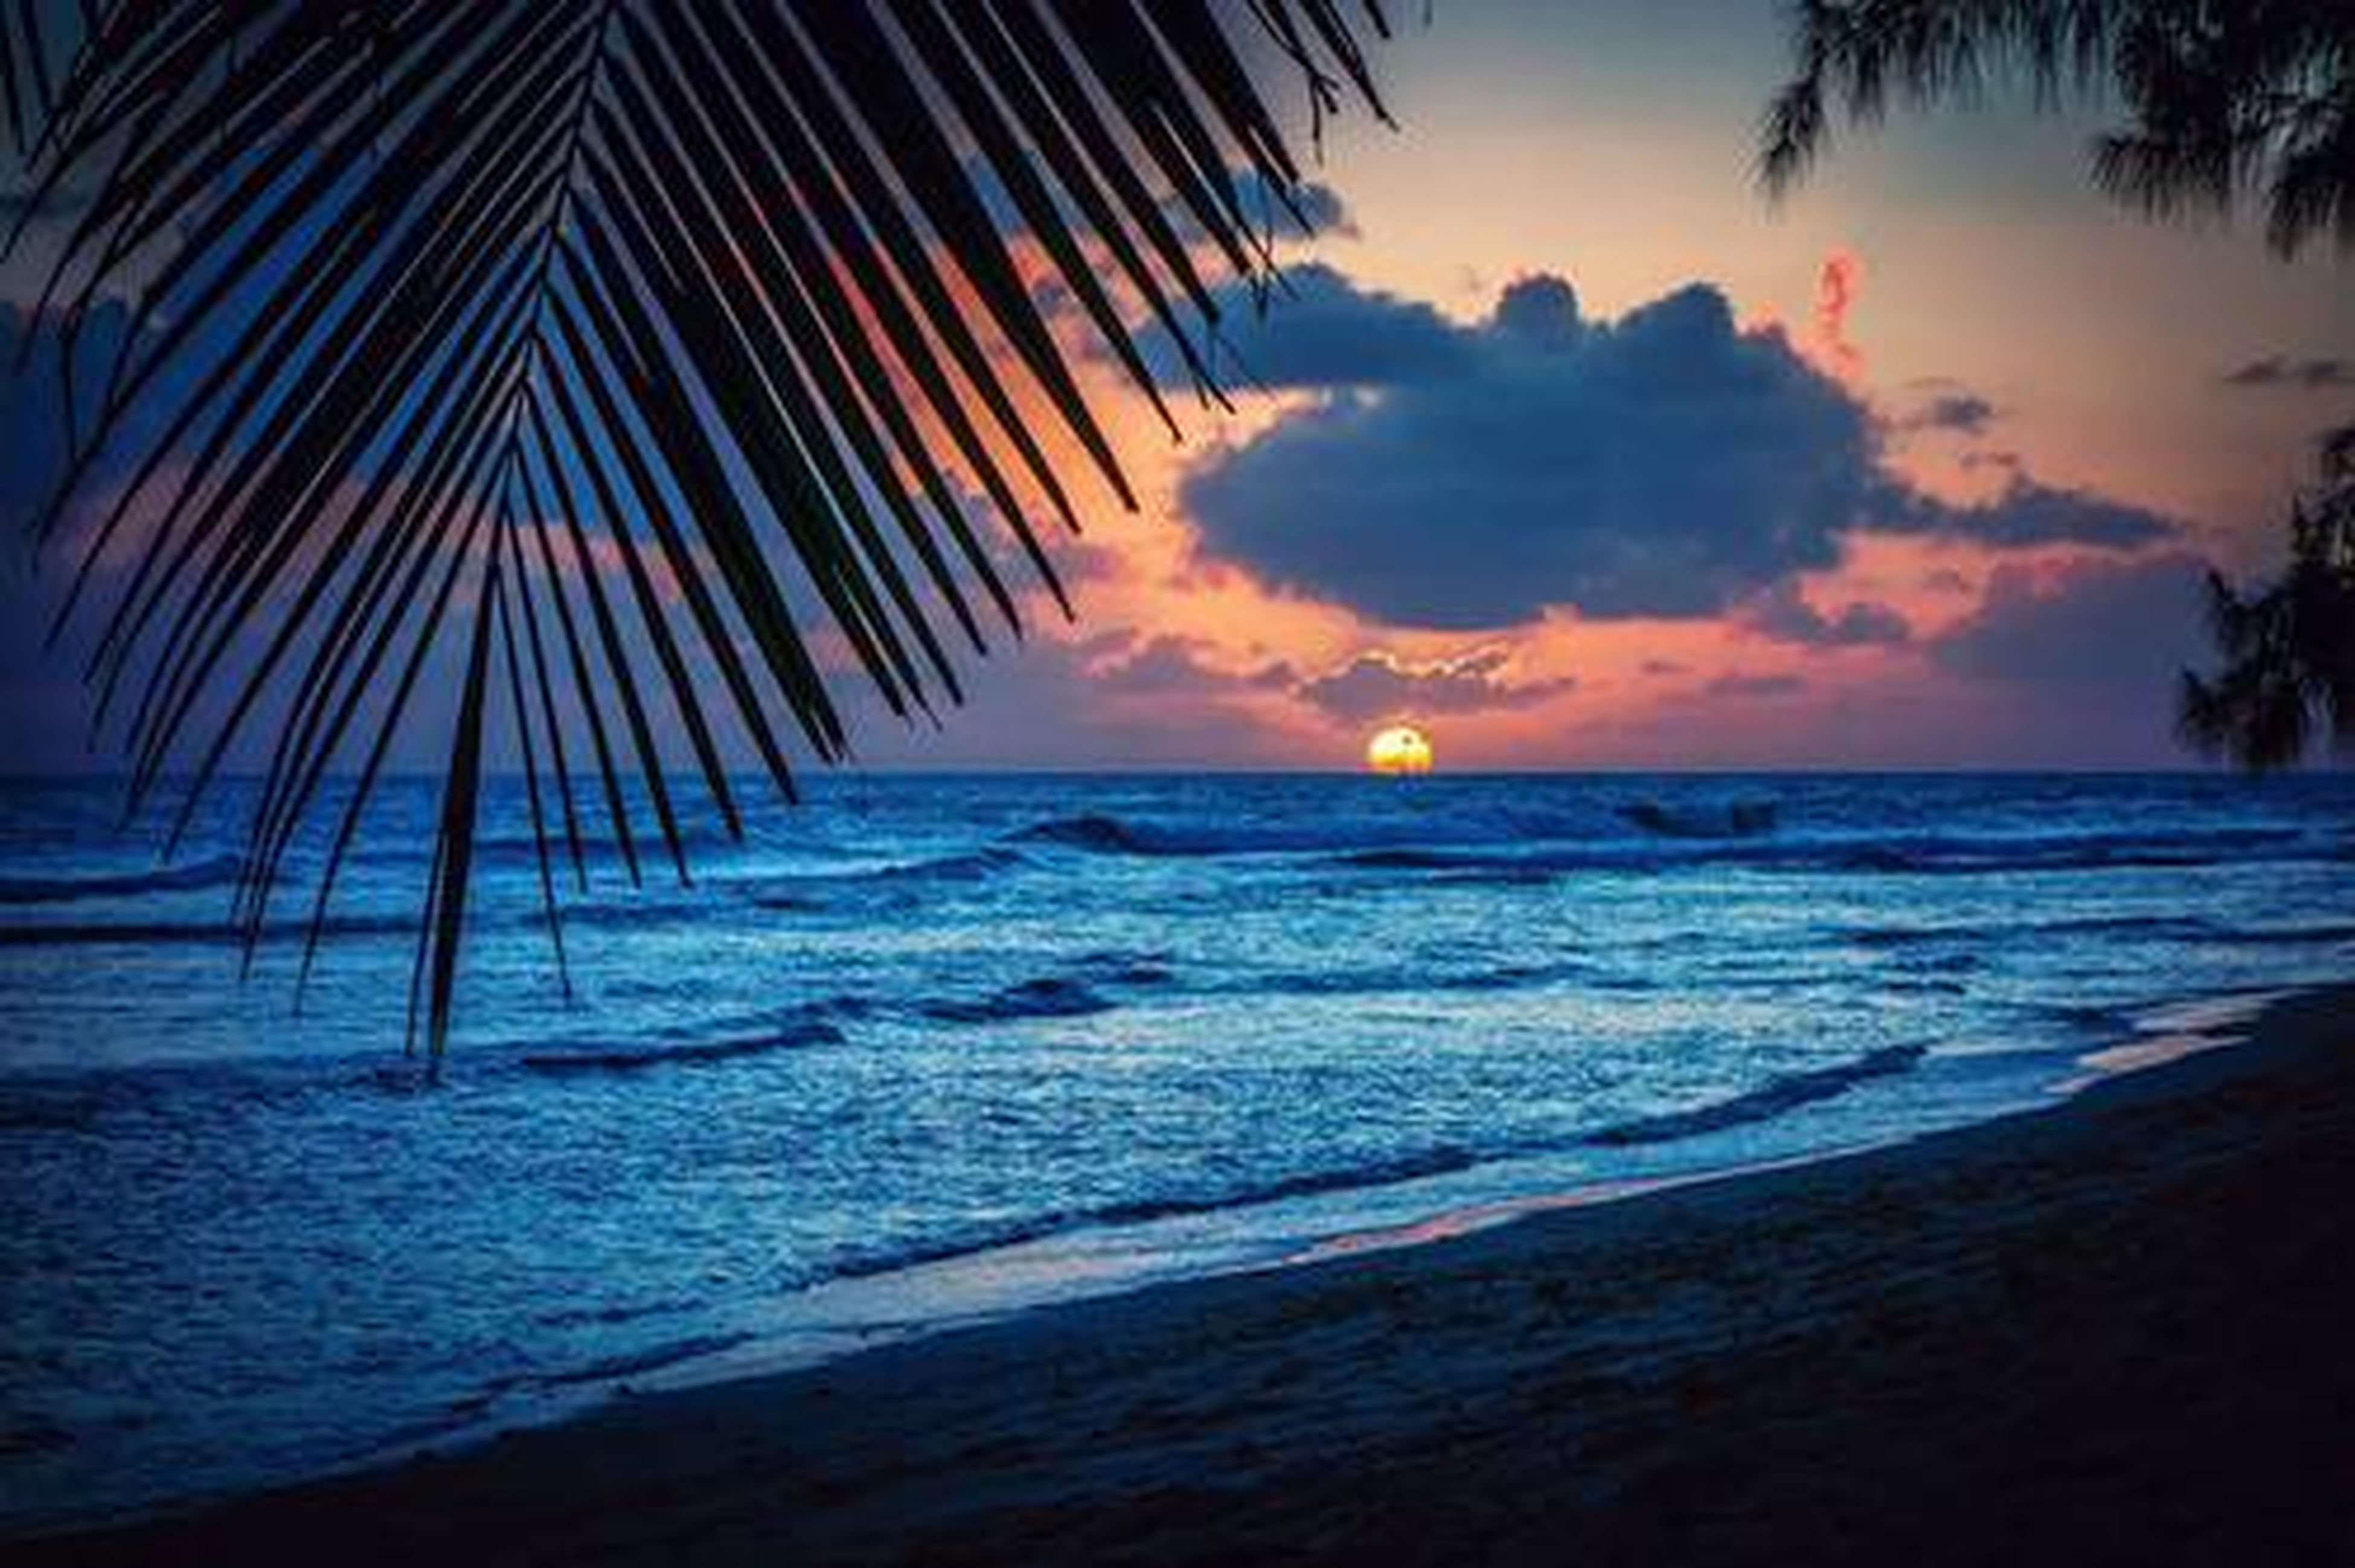 sea, horizon over water, beach, water, sunset, scenics, shore, tranquil scene, beauty in nature, sky, tranquility, palm tree, nature, wave, idyllic, sand, orange color, cloud - sky, coastline, surf